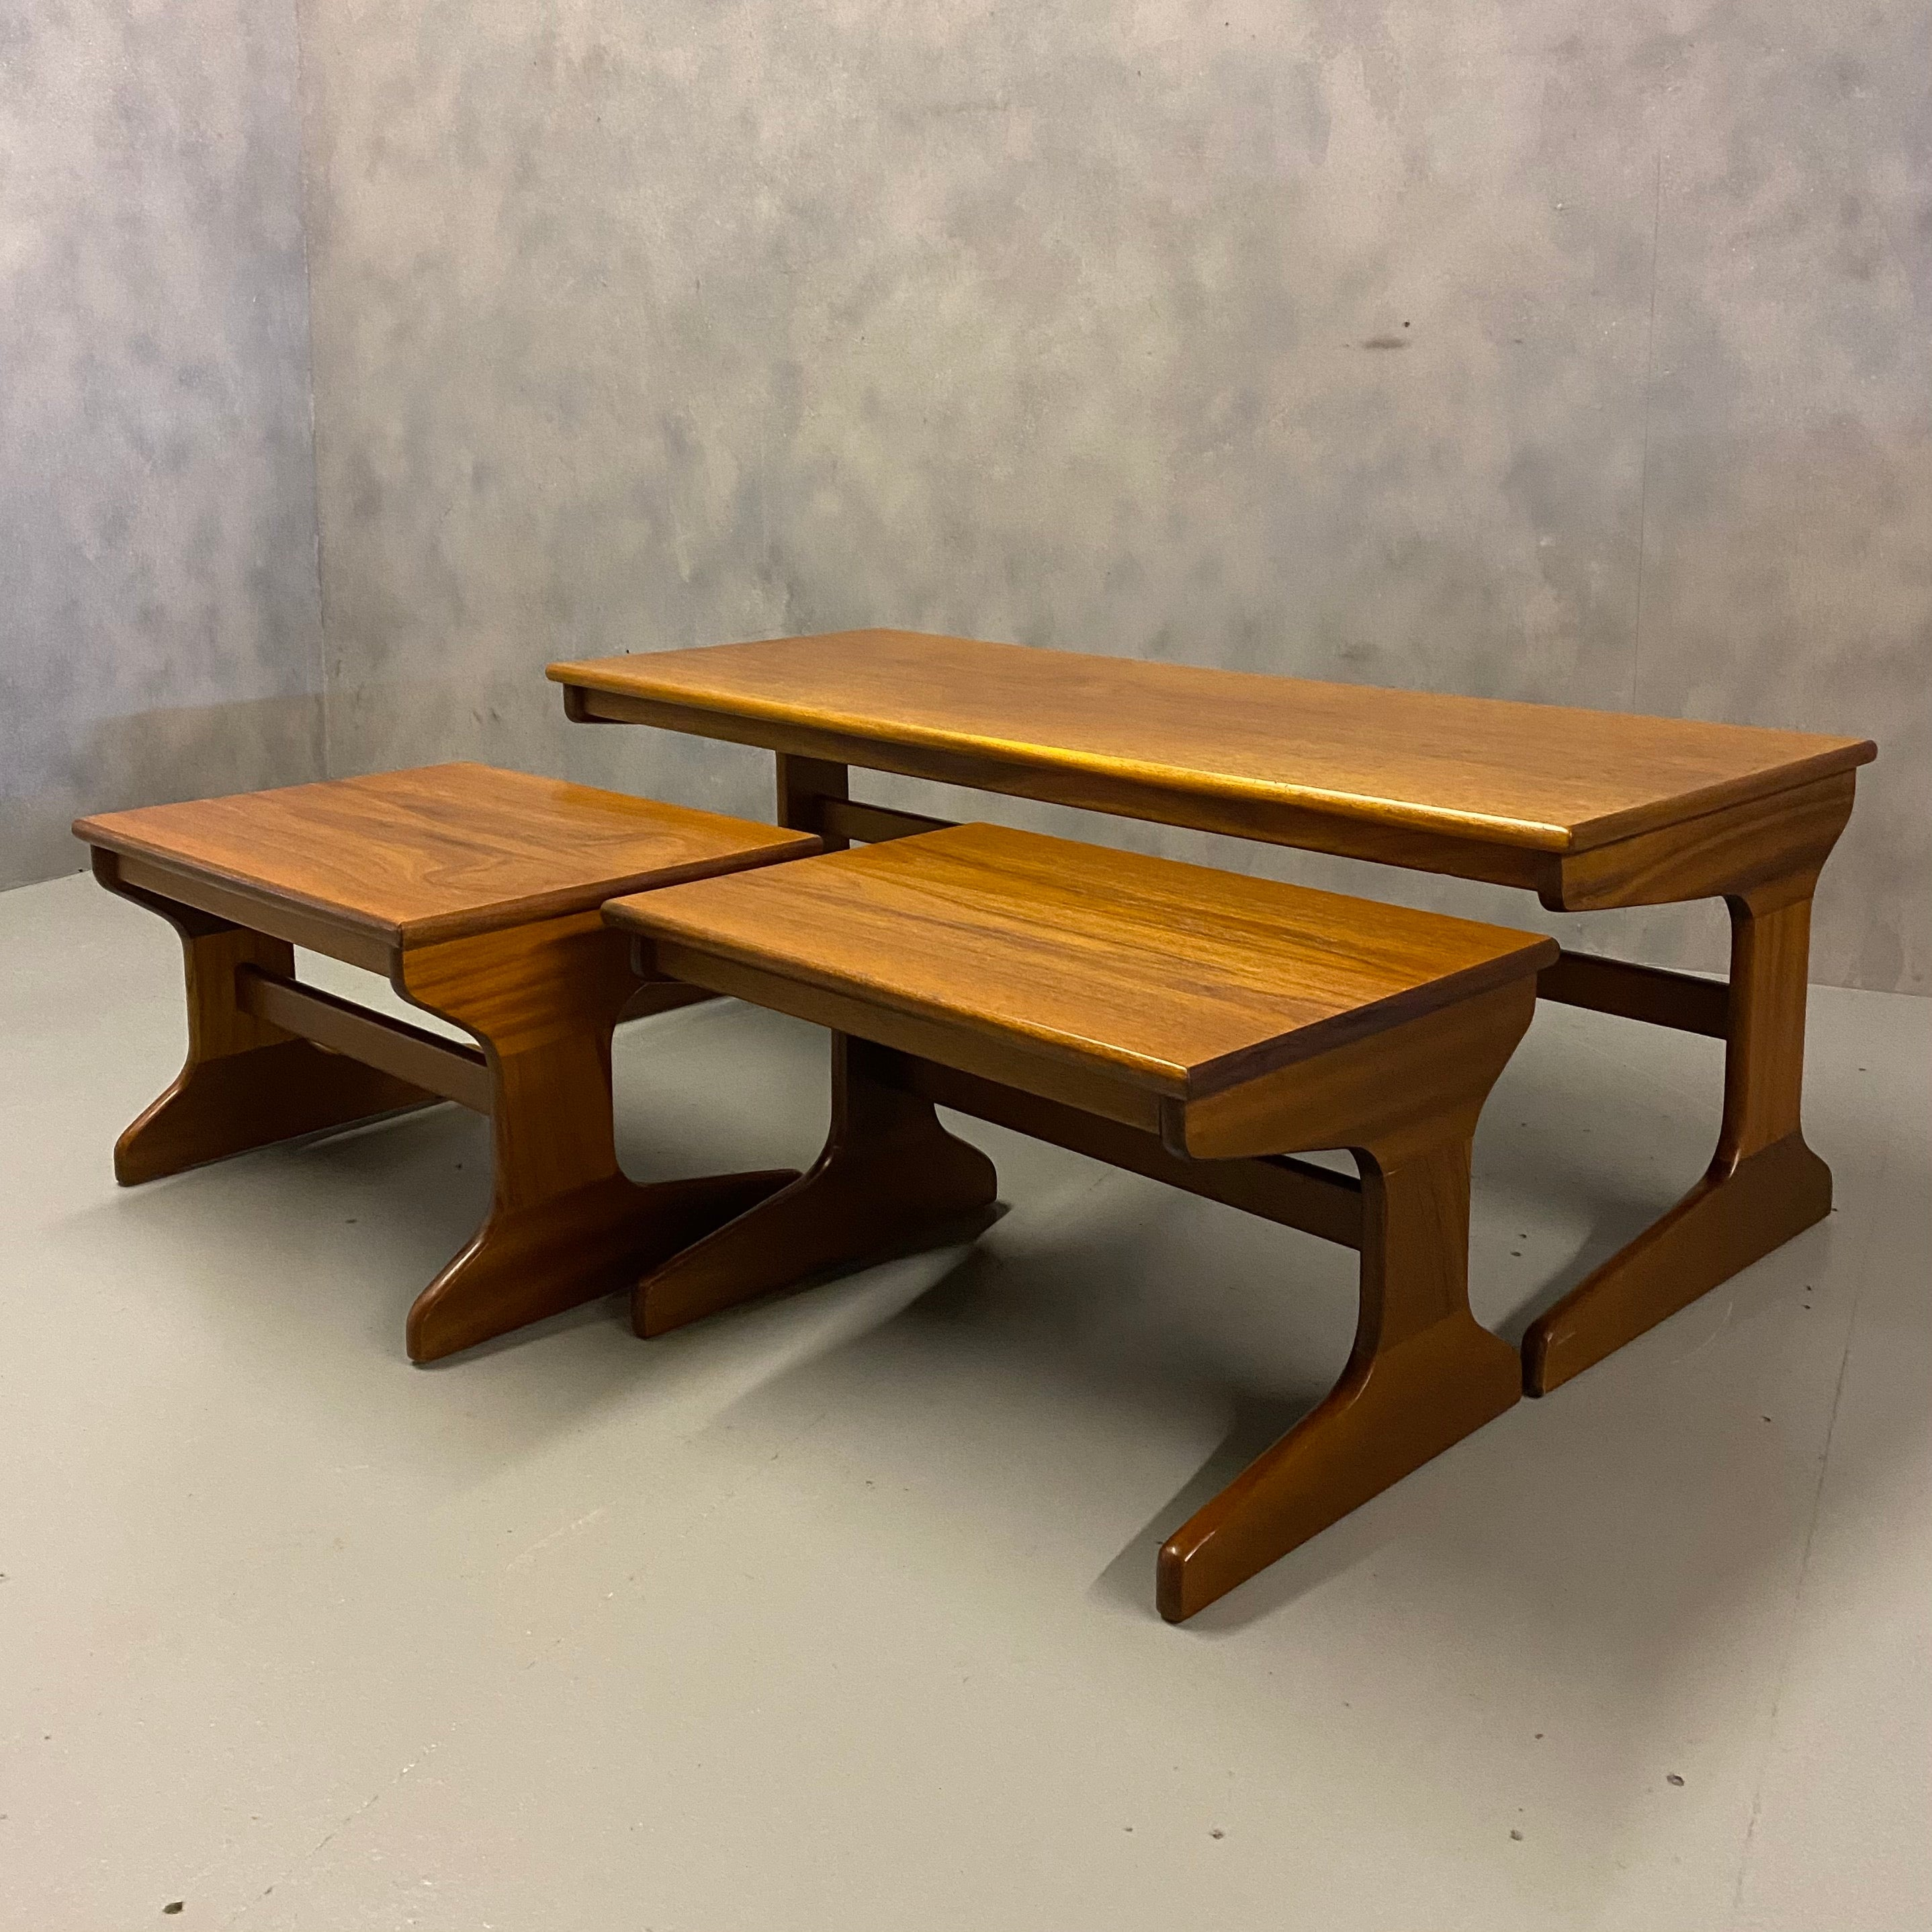 NEST TEAK TABLES